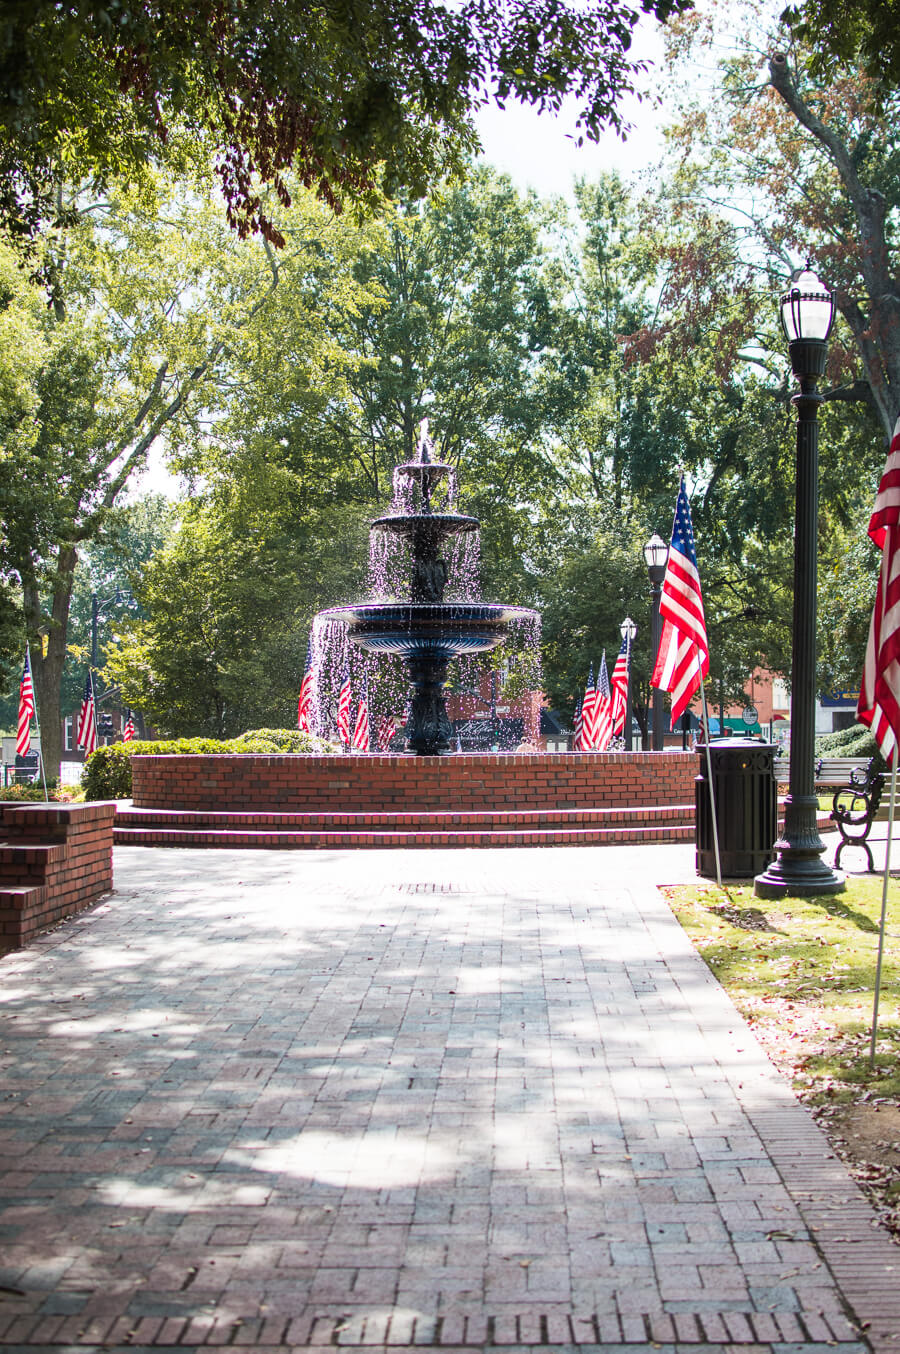 Marietta Square Fountain and Flags